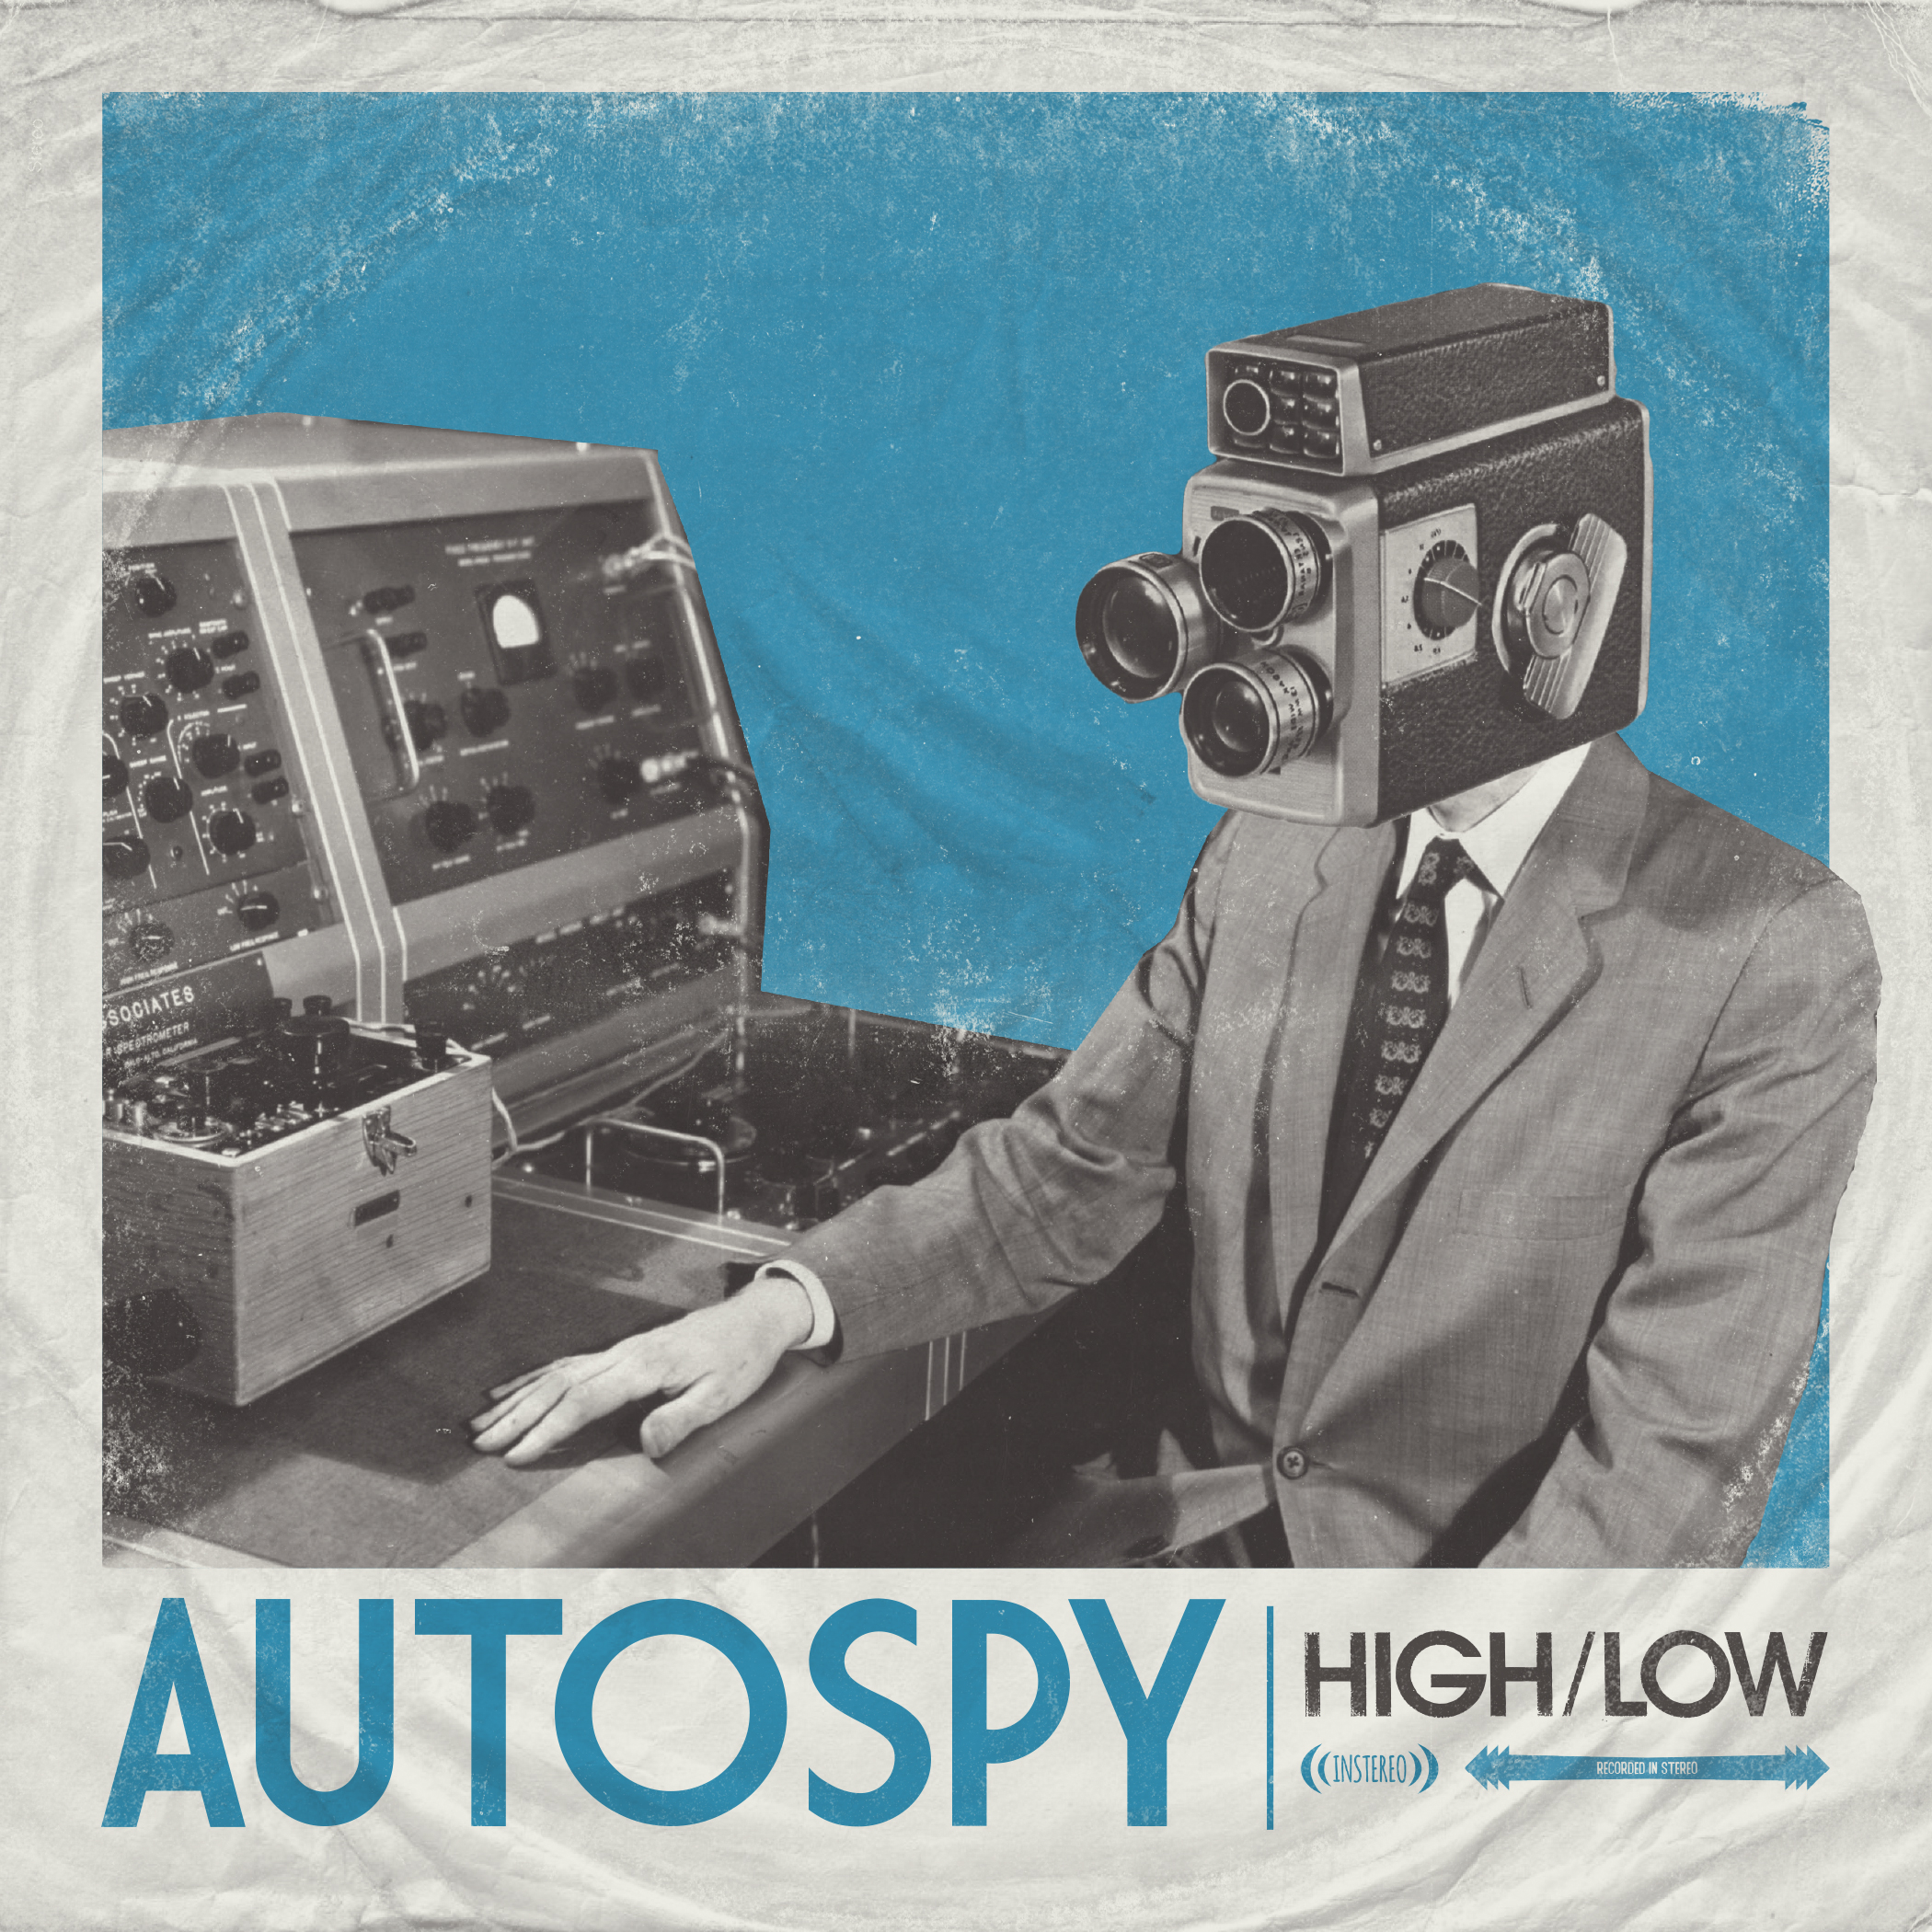 HIGH/LOW - AUTOSPY